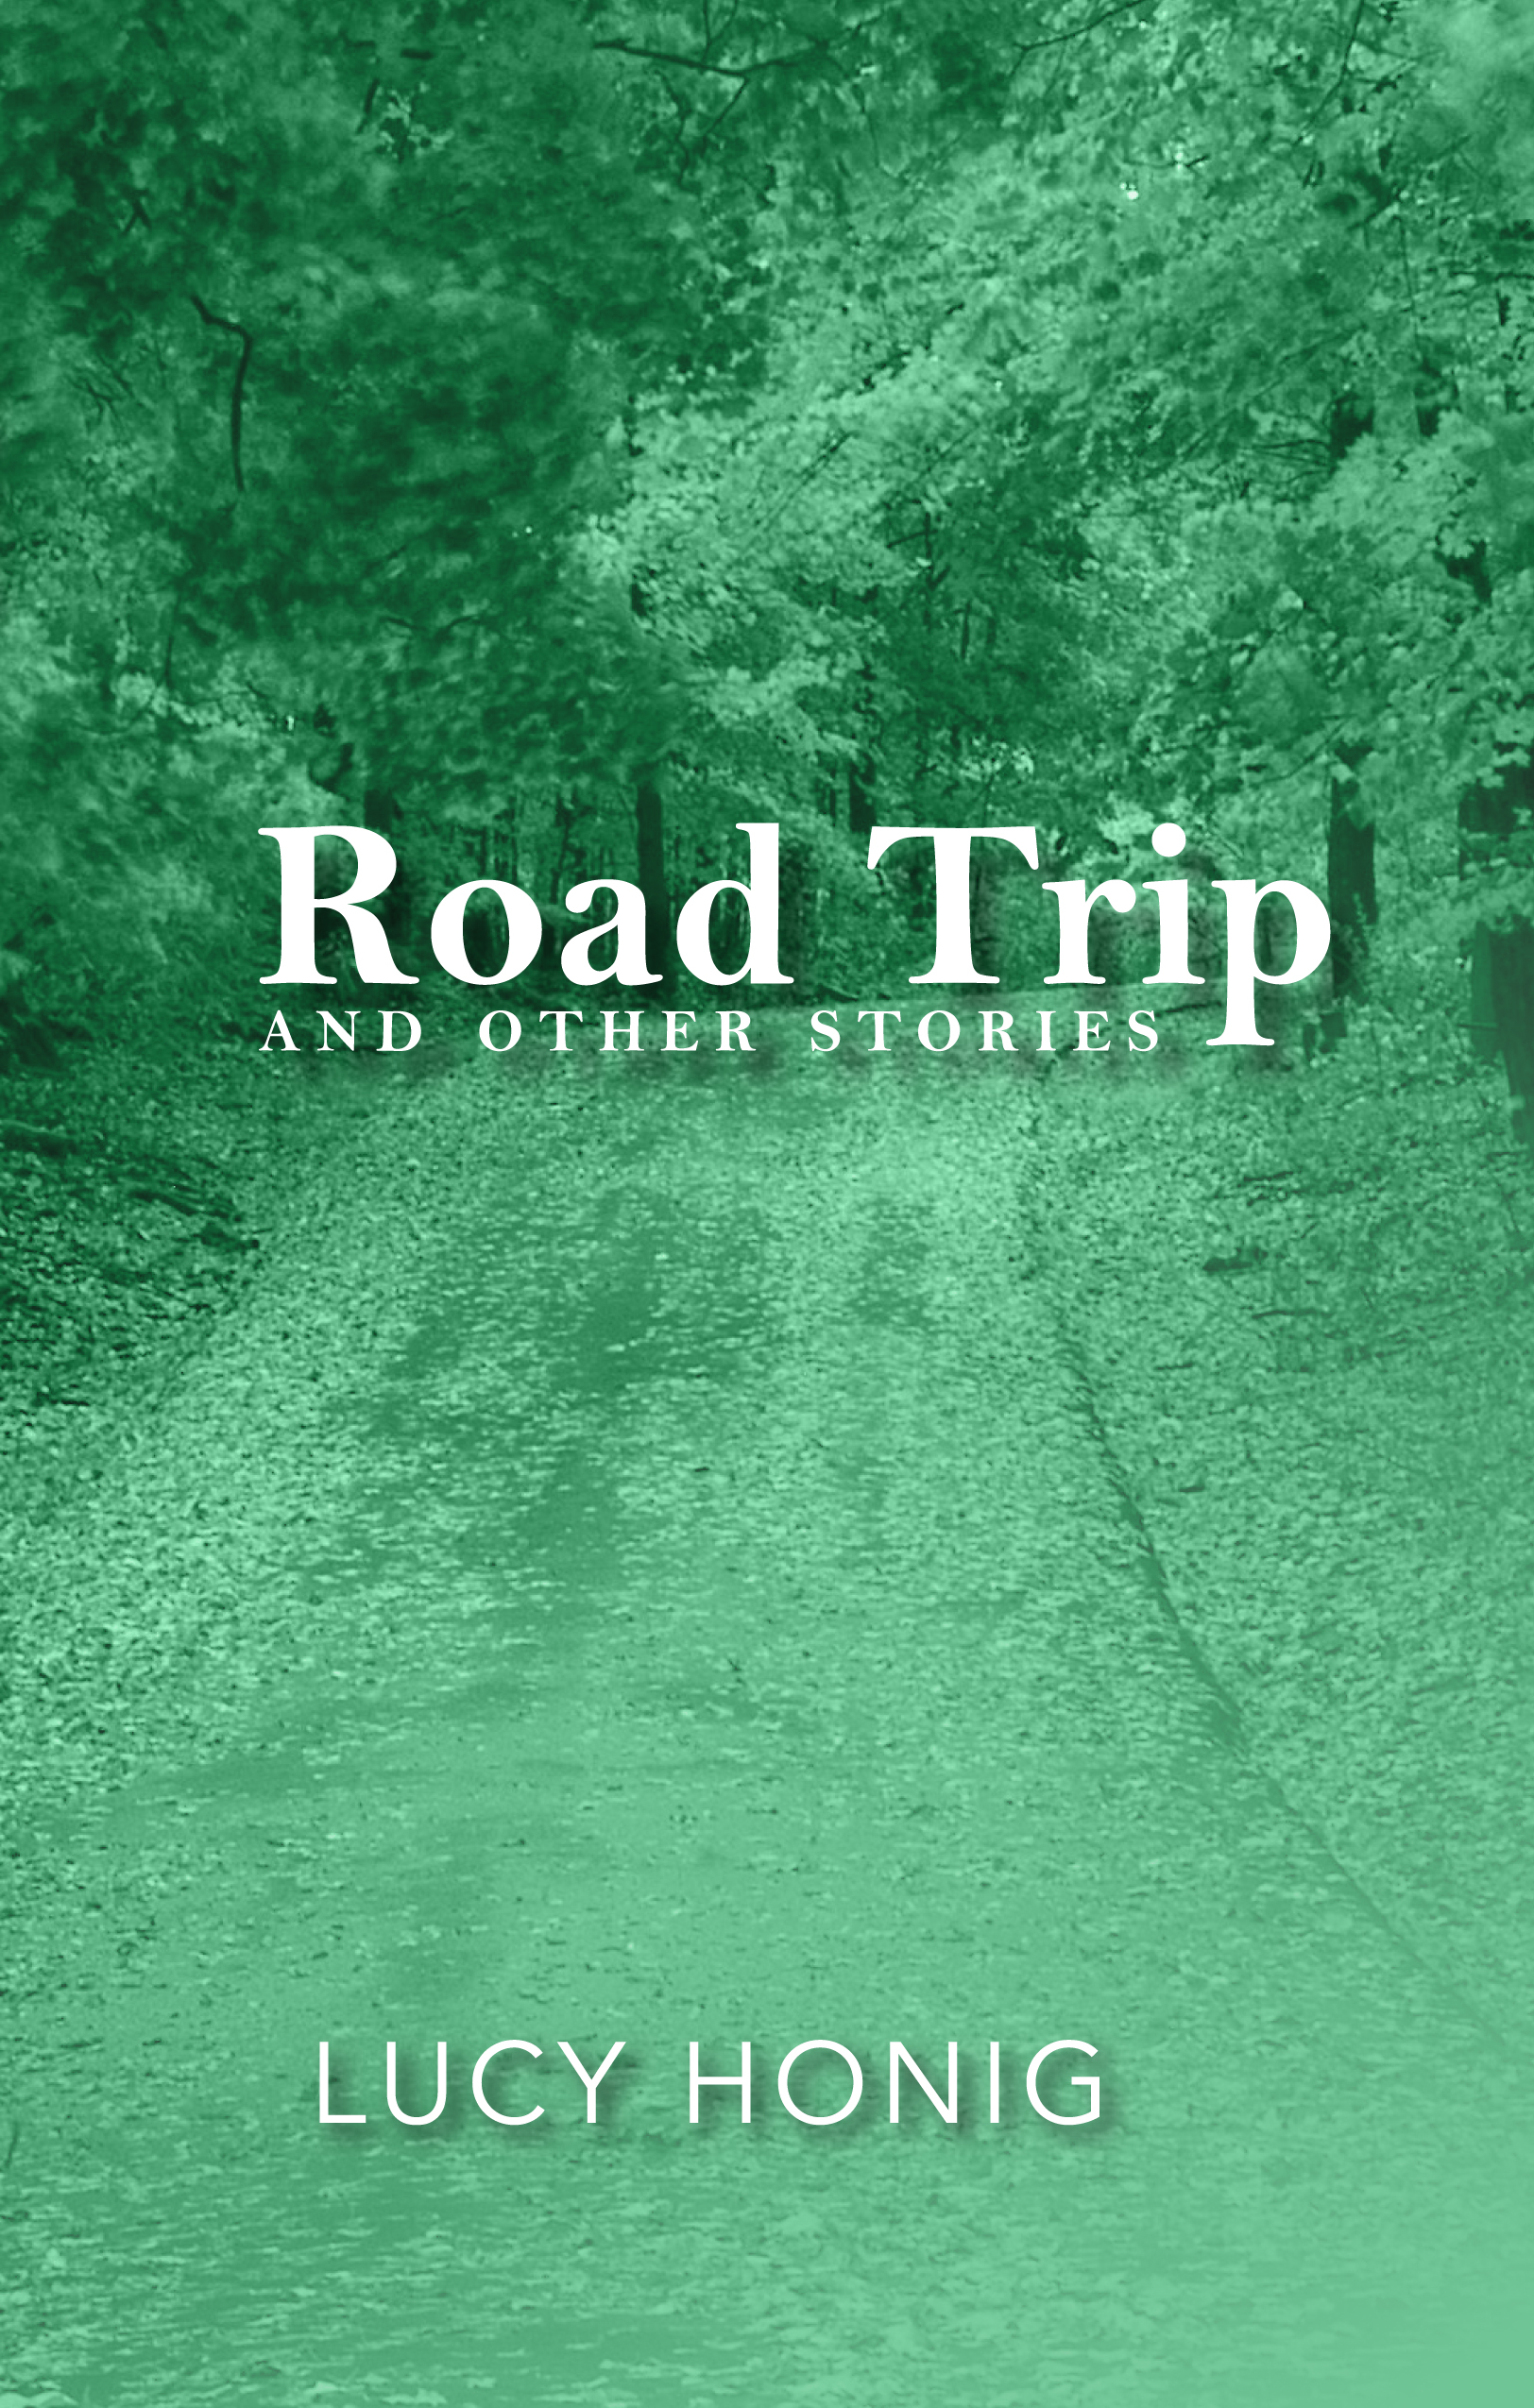 Road Trip & Other Stories